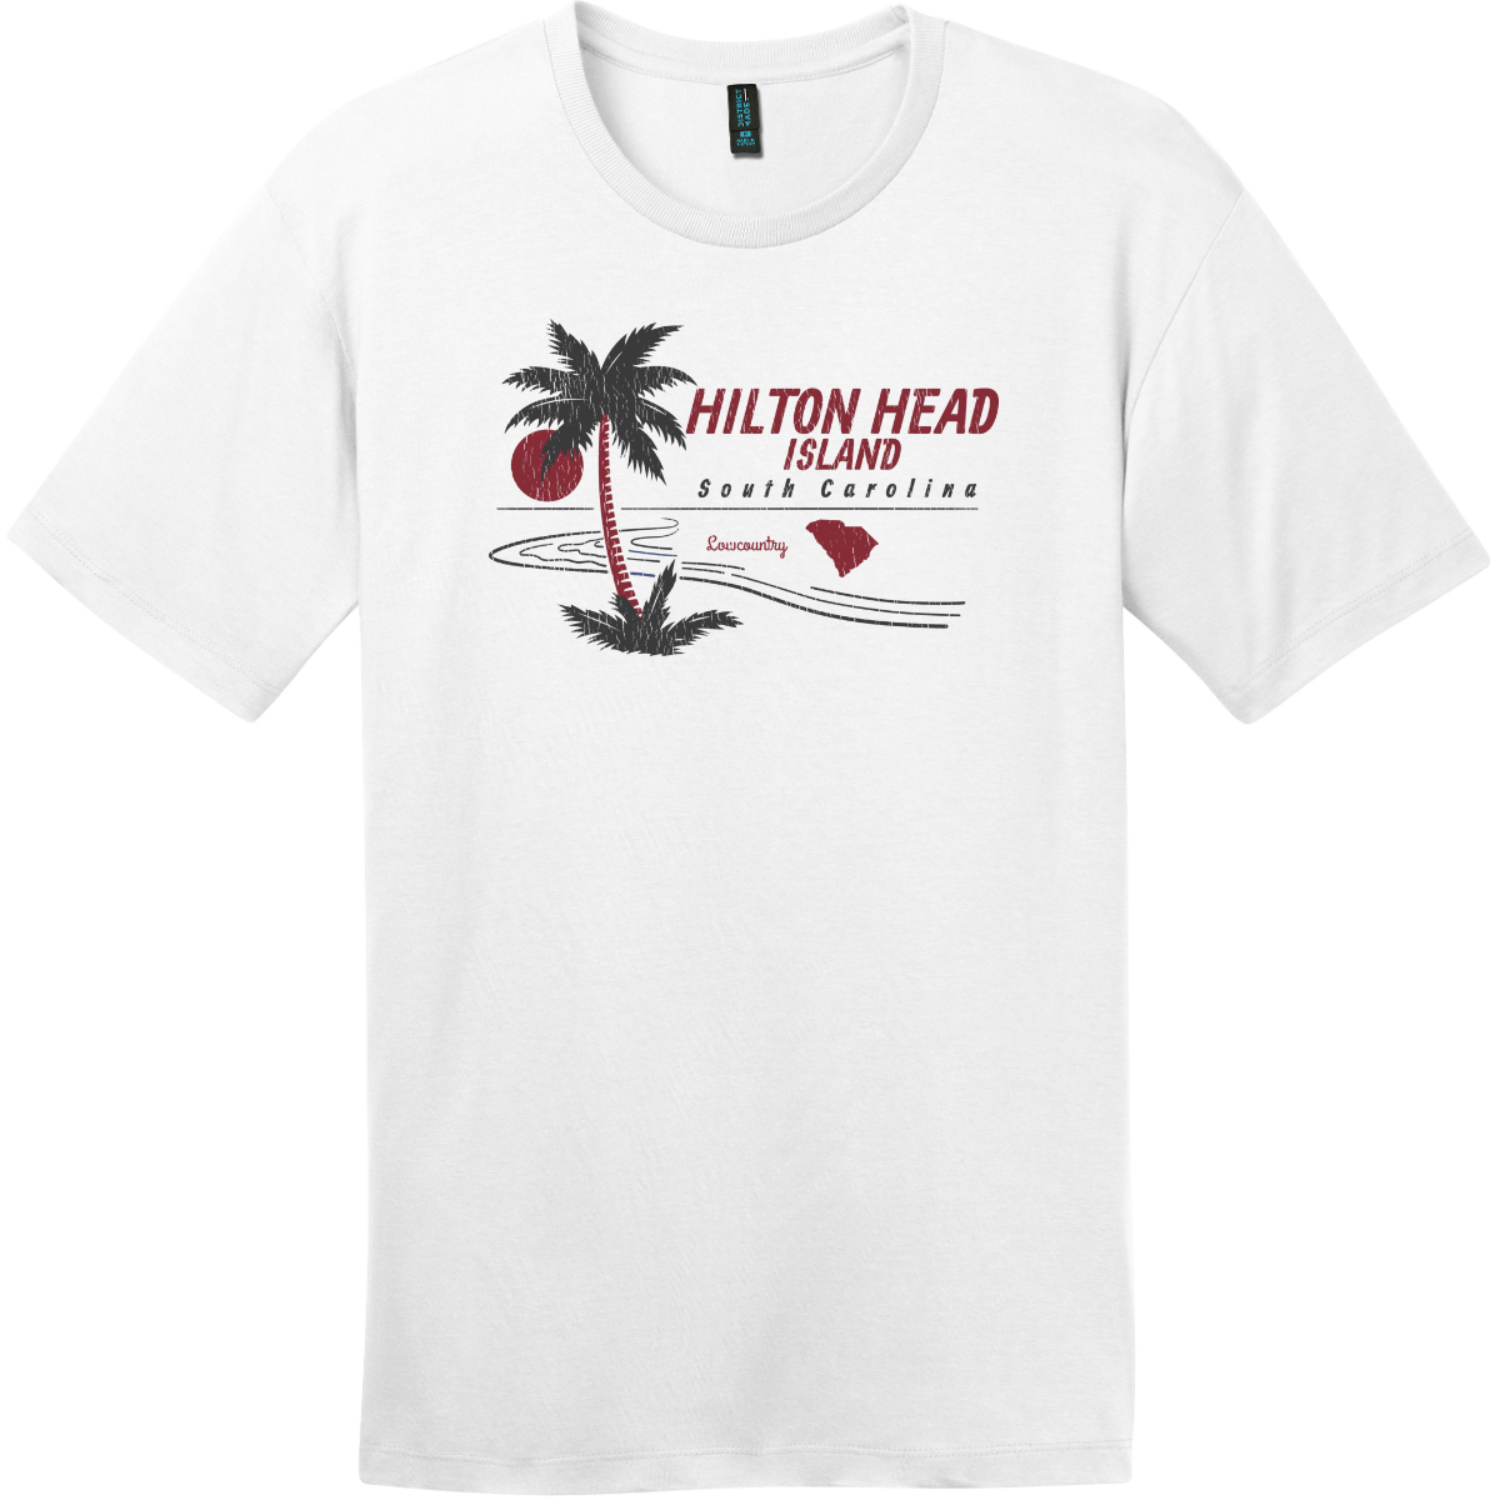 Hilton Head Island Lowcountry T-Shirt Bright White District Perfect Weight Tee DT104